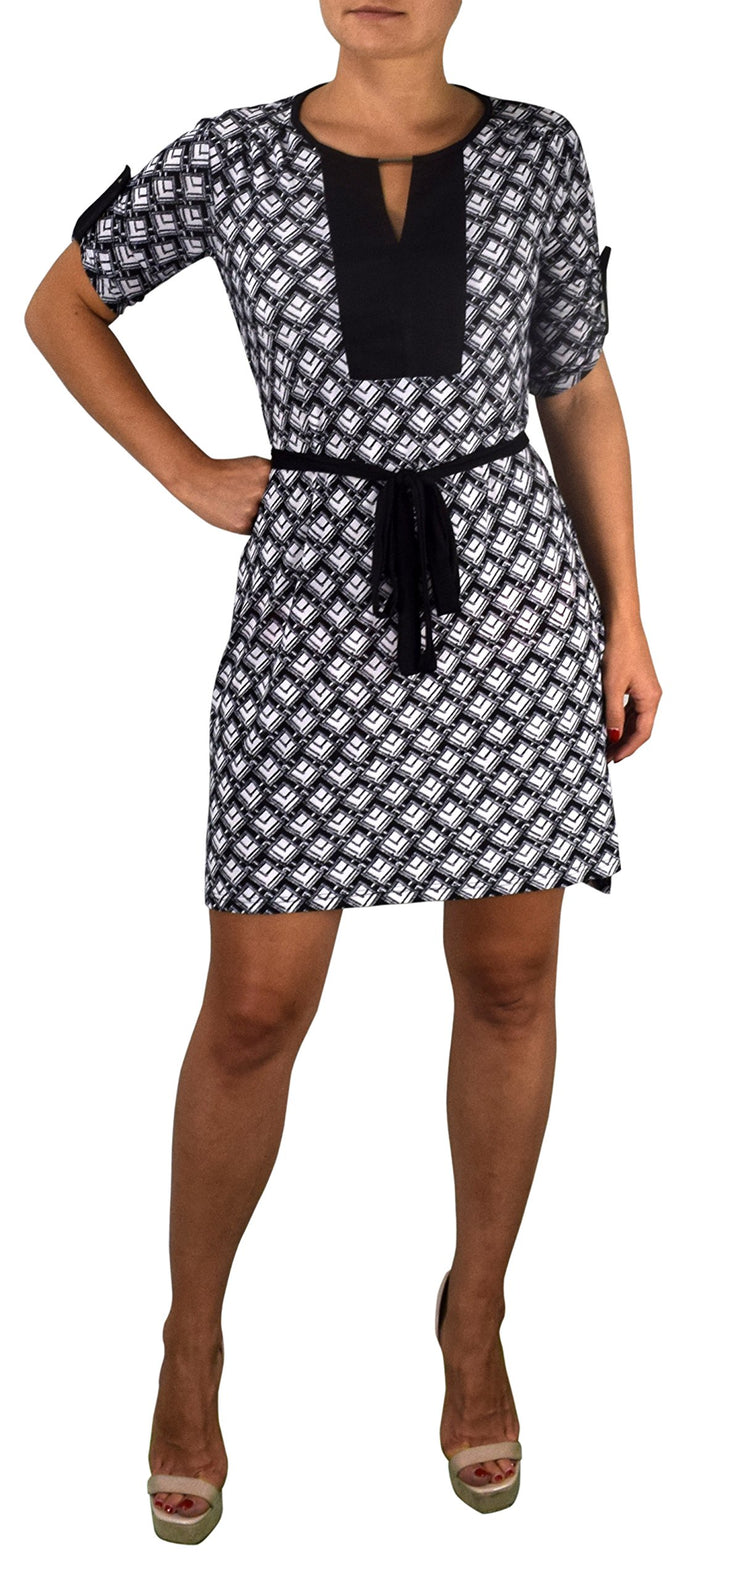 A2302-Hi-Lo-Shift-Dress-Sq-Blac-Med-KL